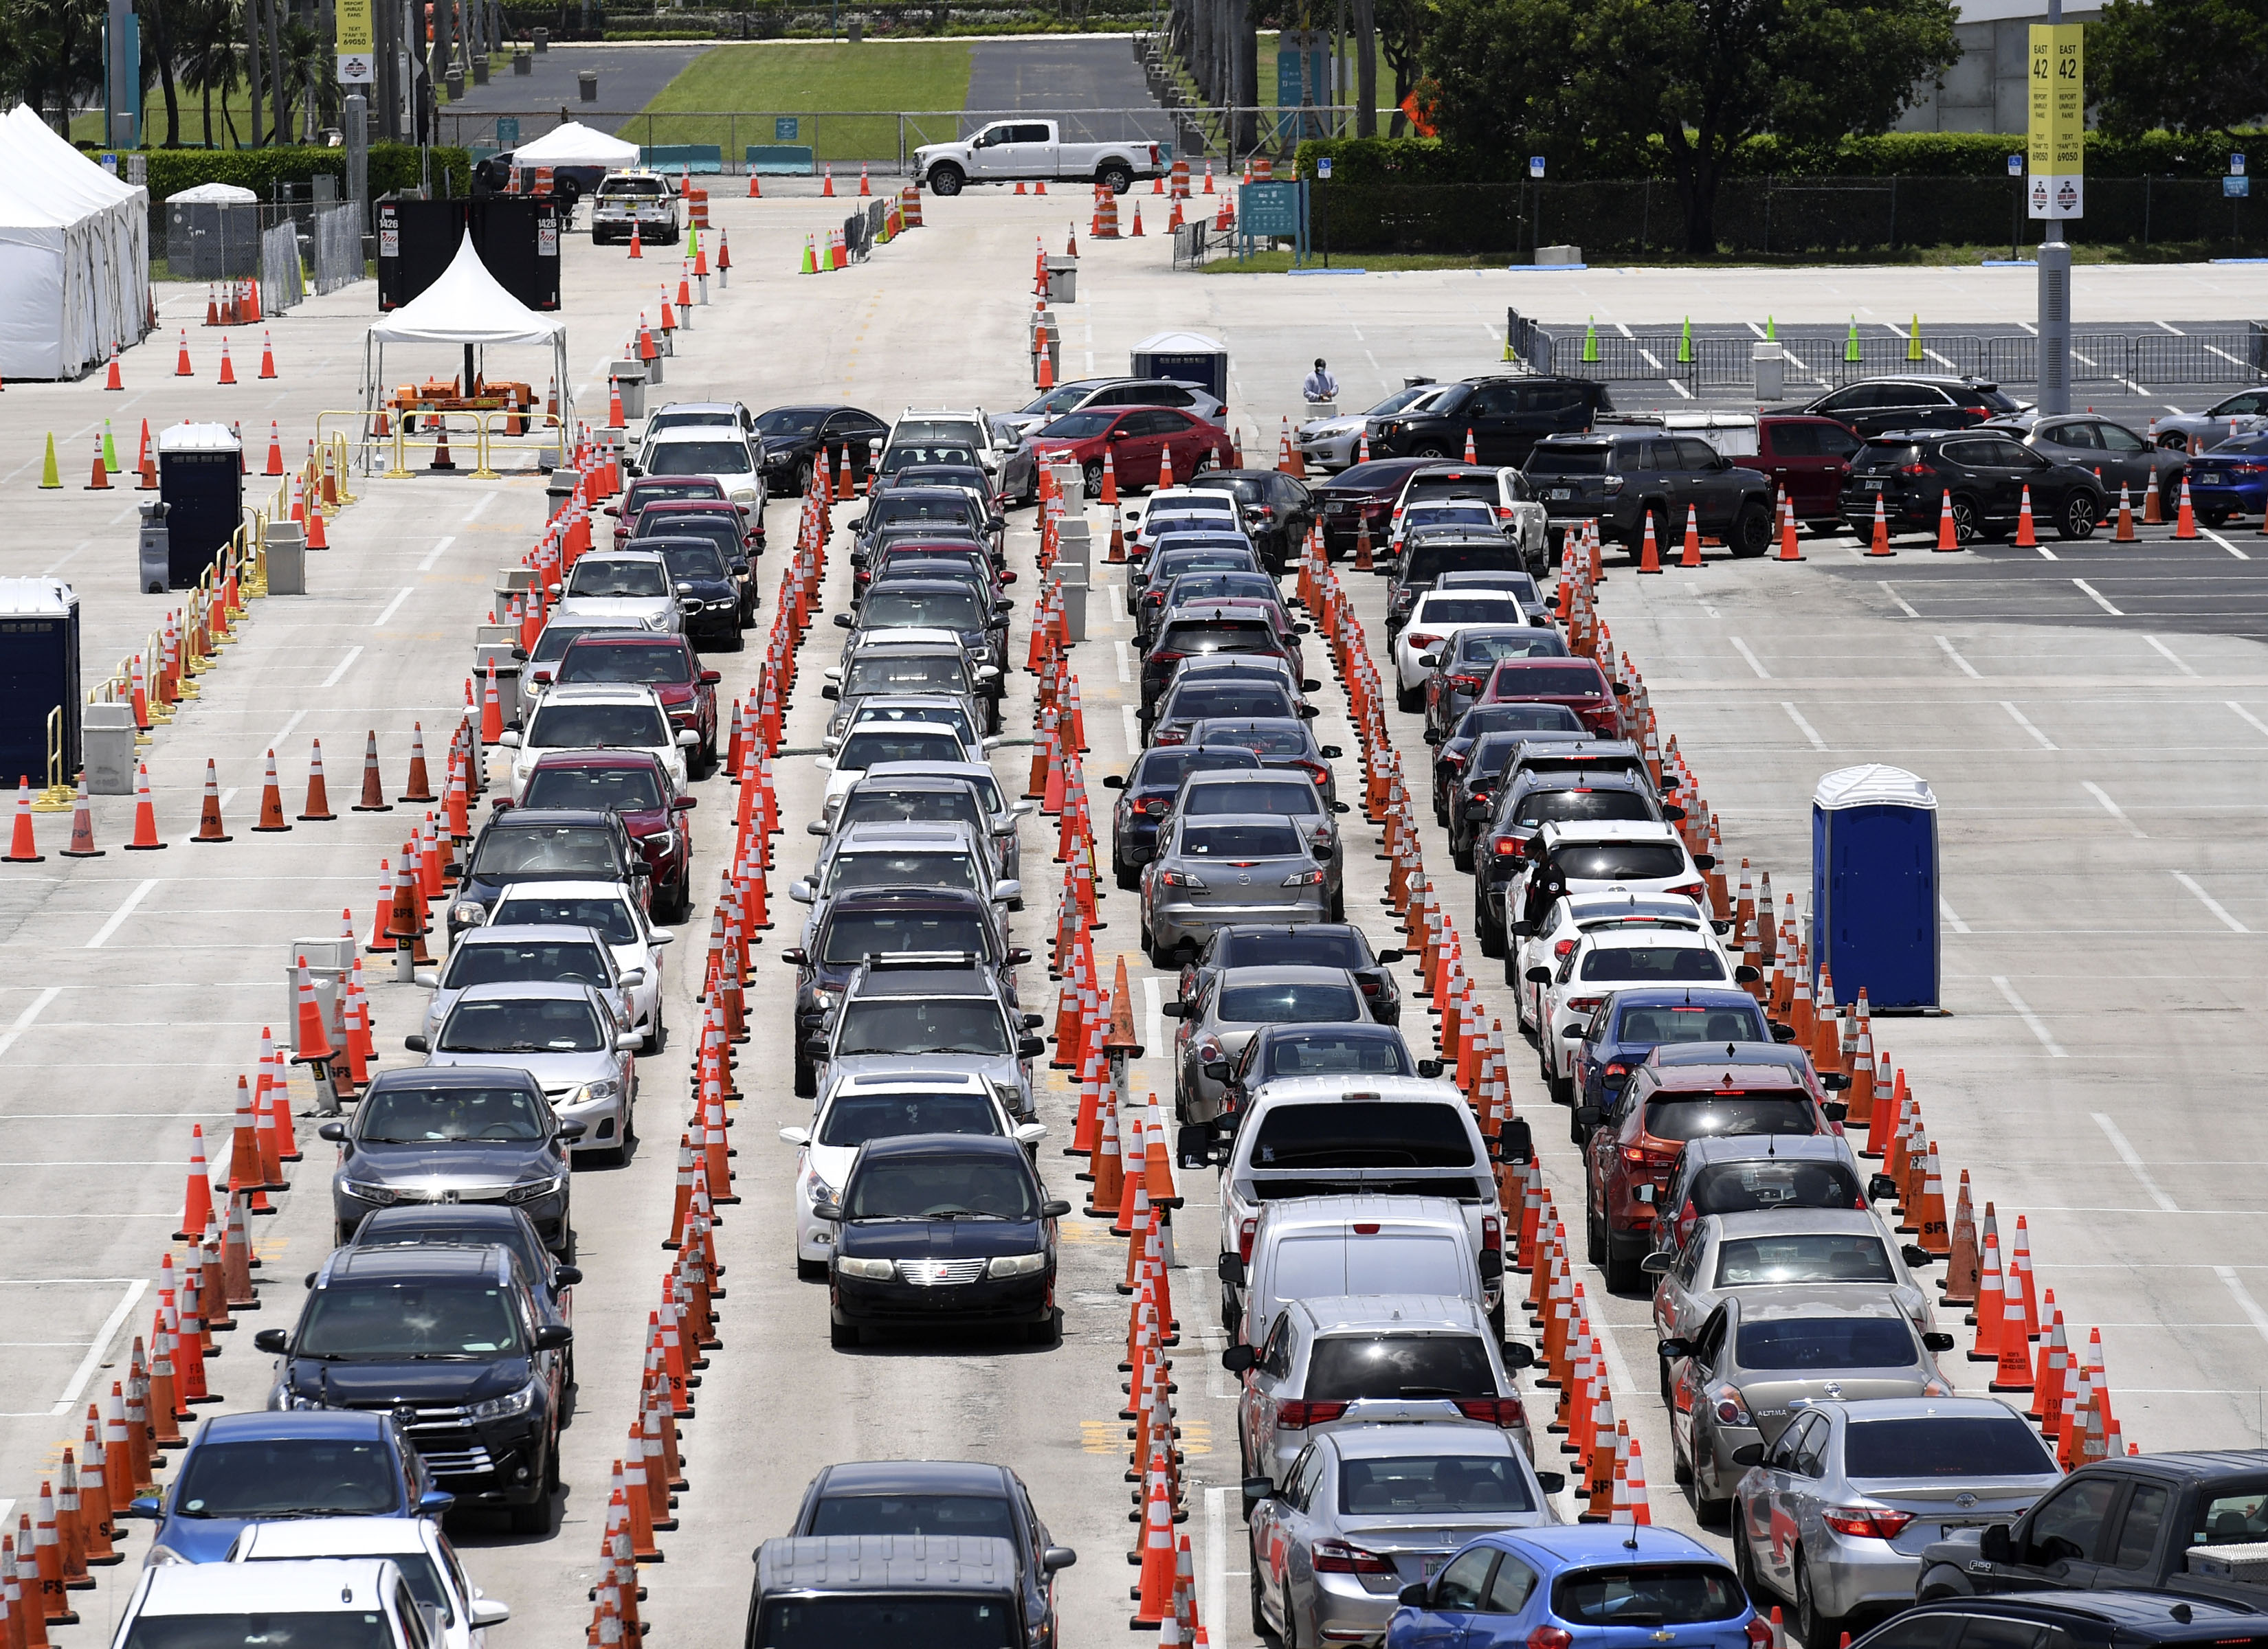 Cars wait in line at a drive-thru Covid-19 testing site at the Miami Beach Convention Center in Florida on July 10.